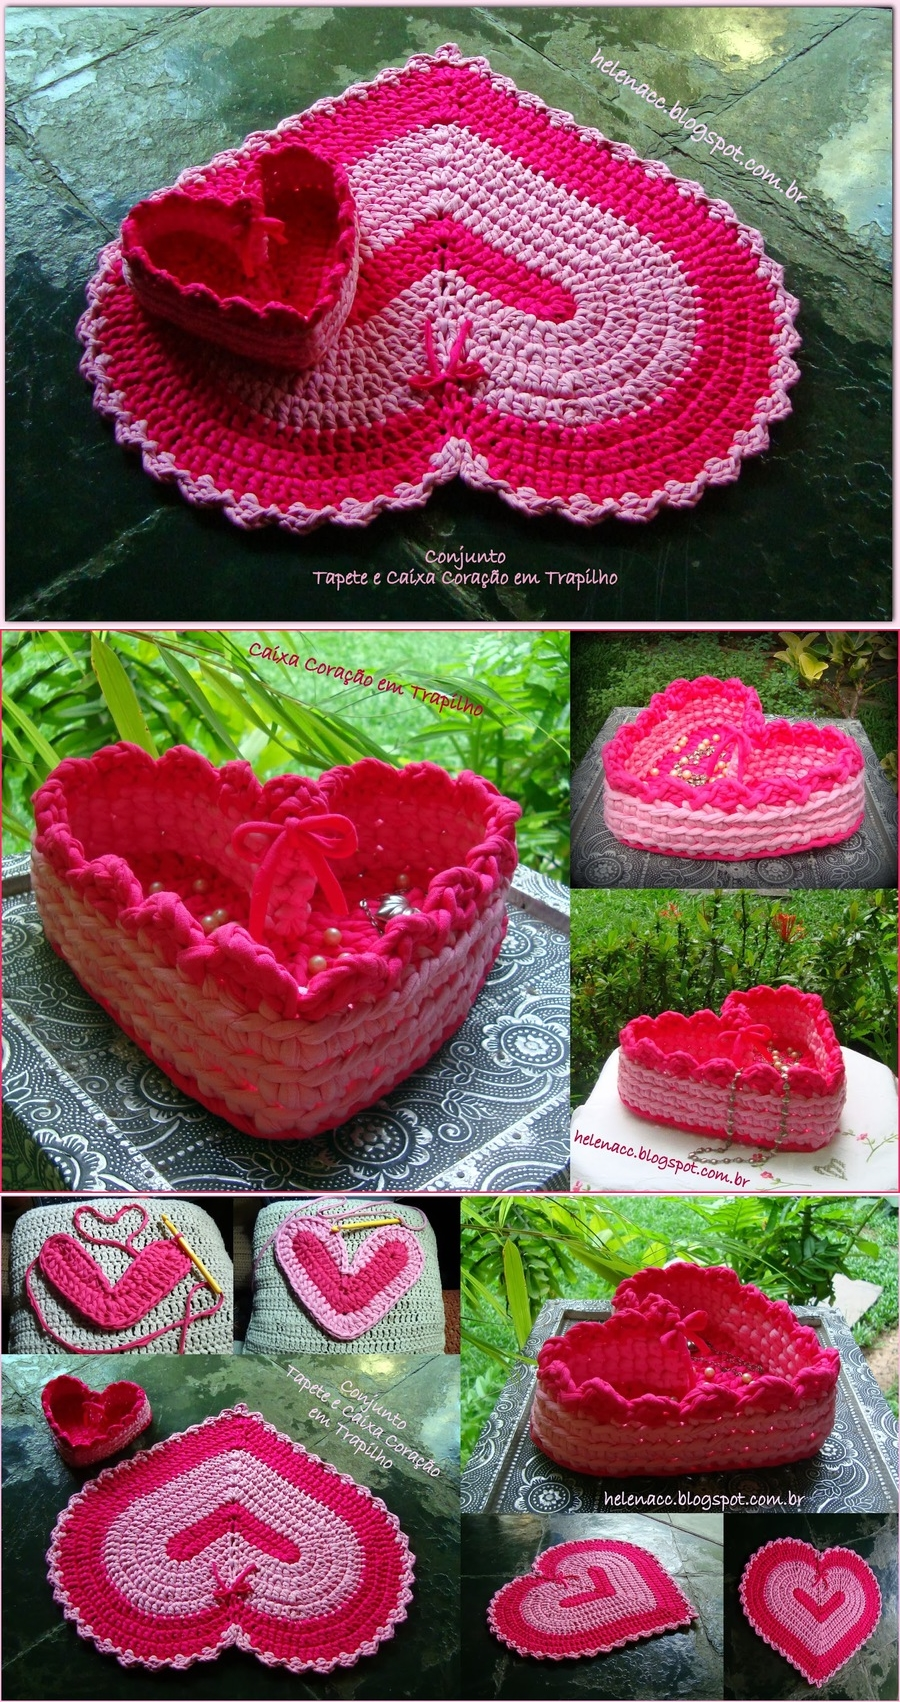 Crochet Heart Basket & Rug In One Free Crochet Chart